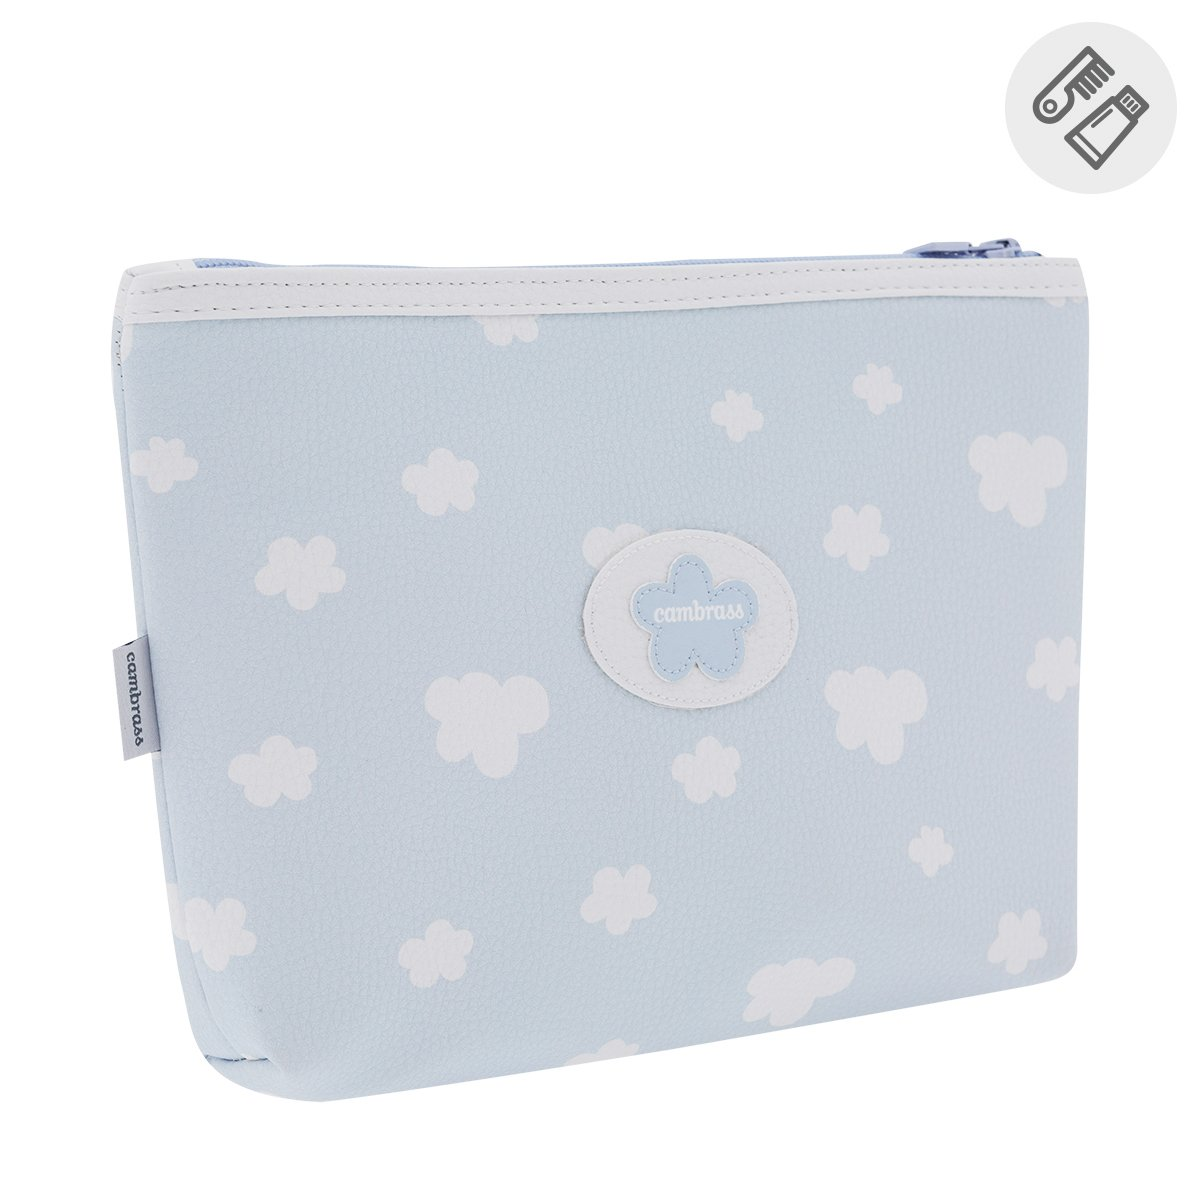 Cambrass Toilet Bag Cambruss 41308